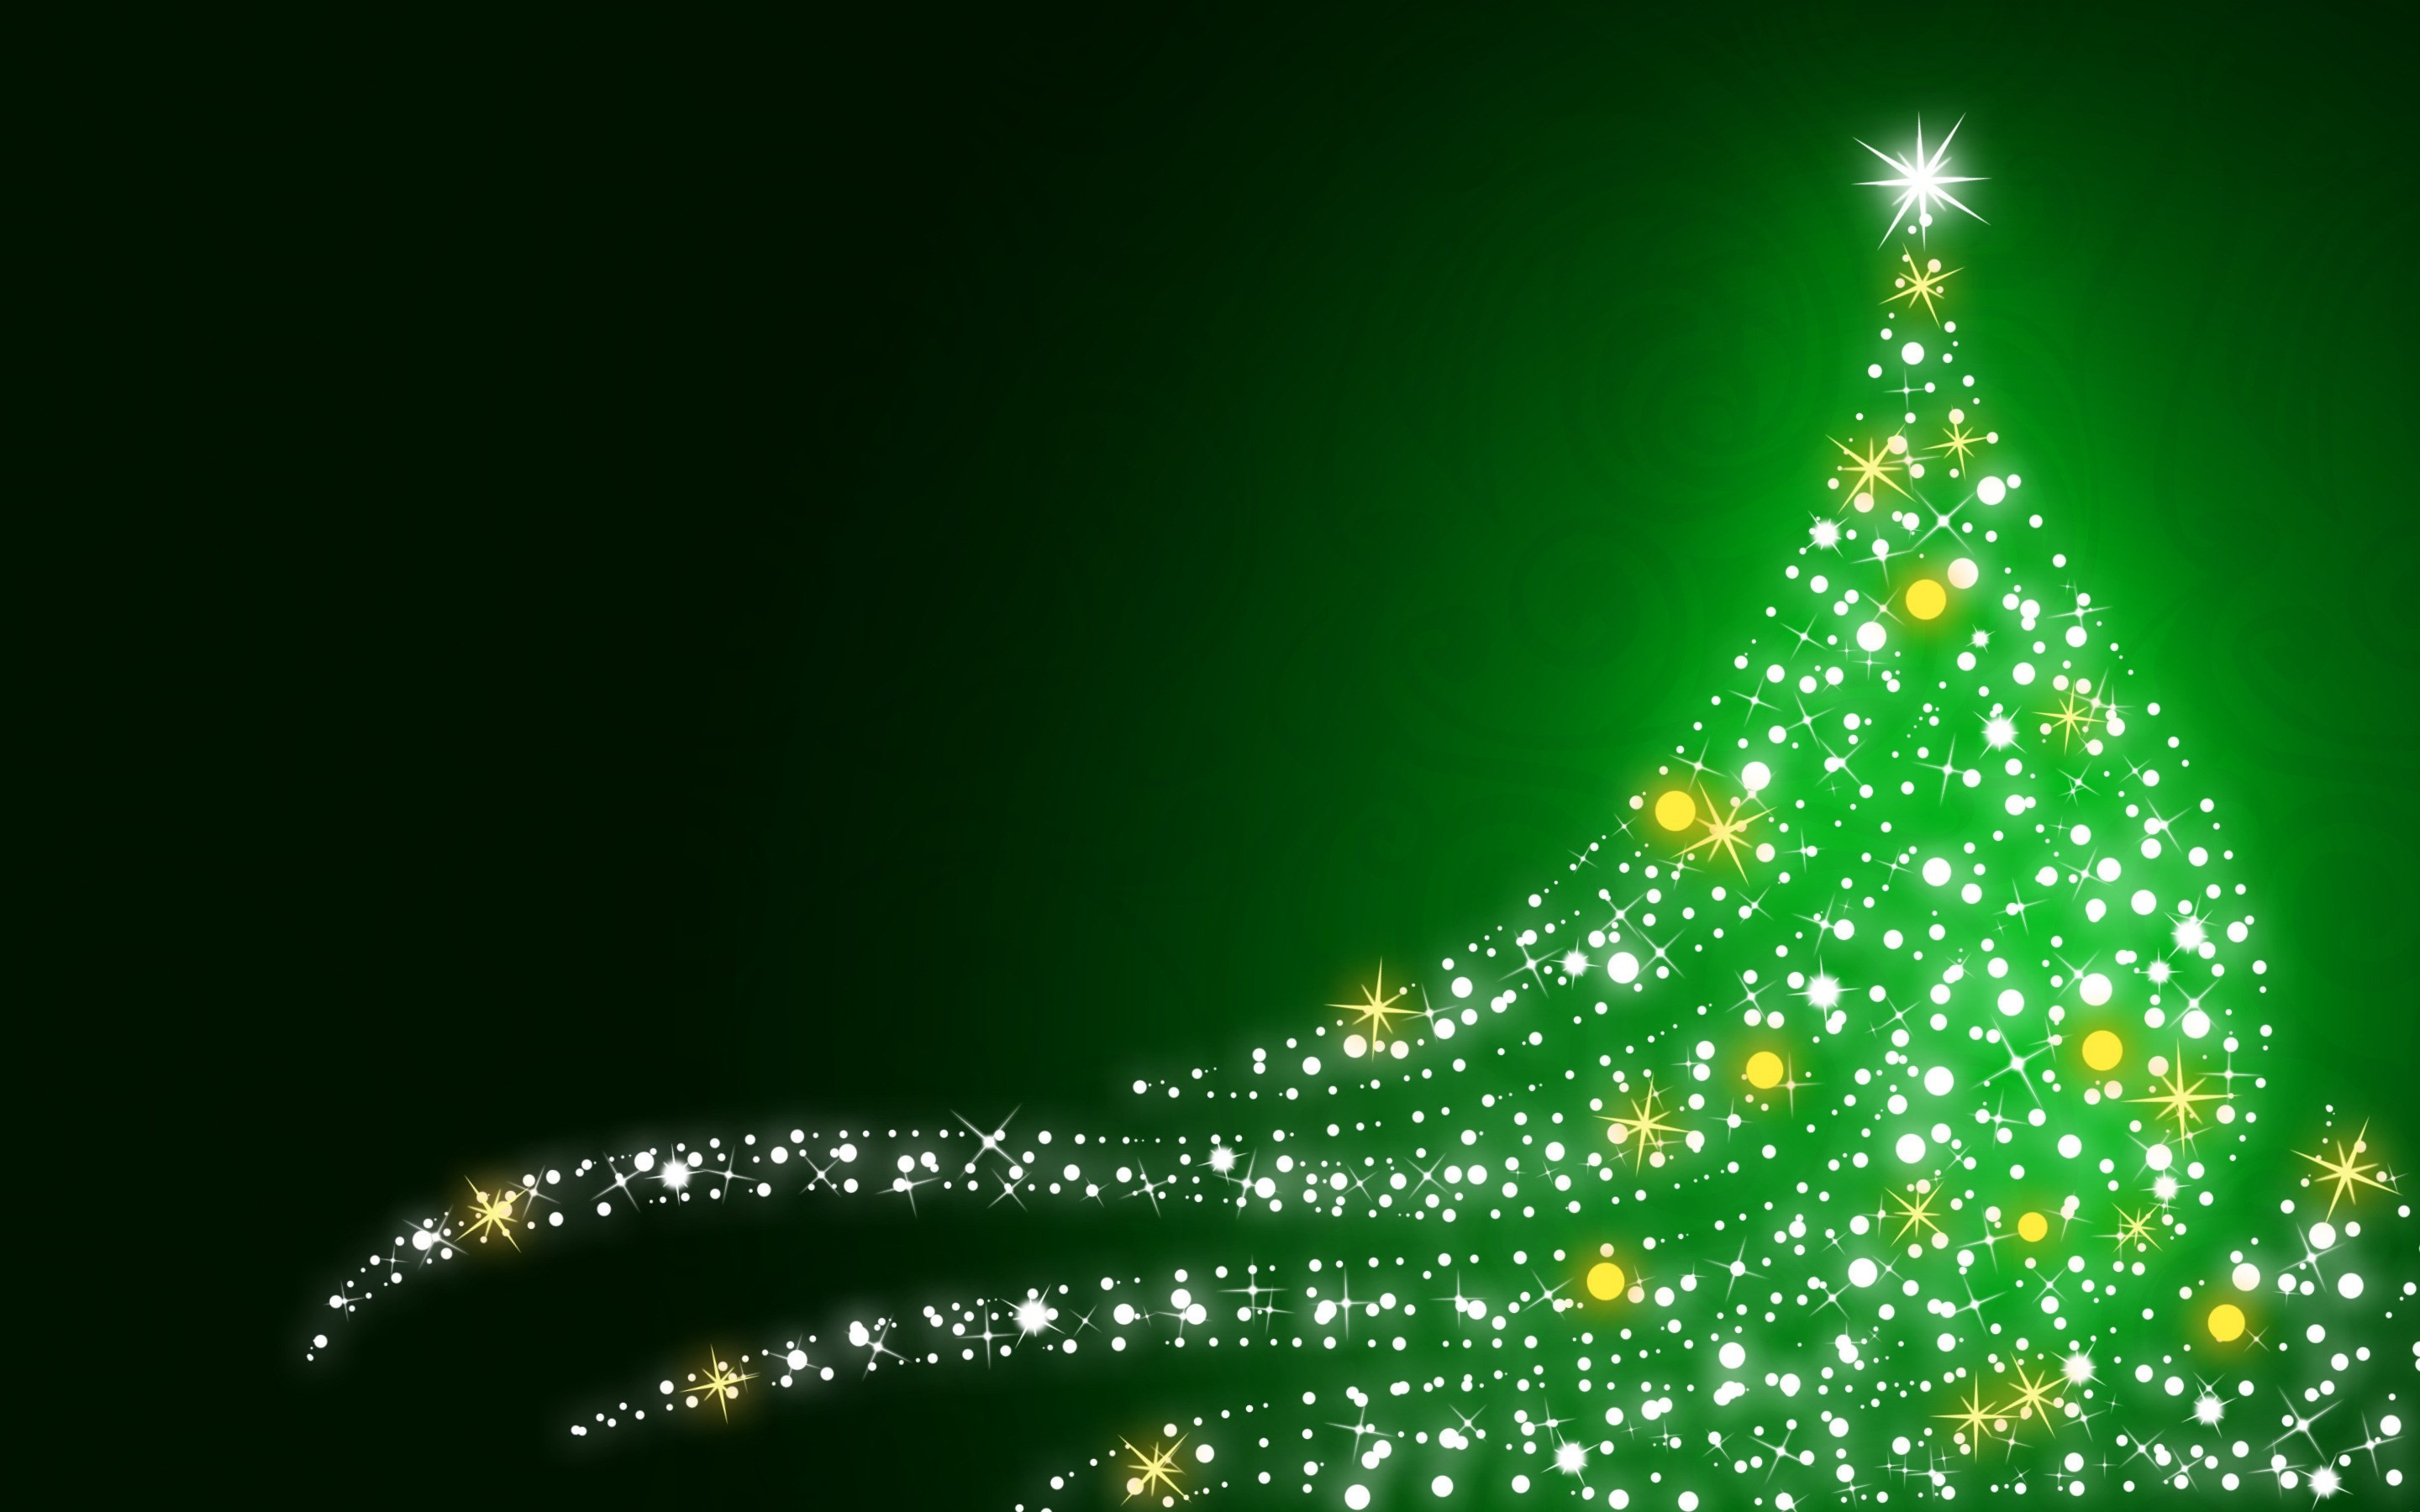 2880x1920px christmas tree background hd by Carr Bush   ololoshka    Pinterest   Christmas tree background